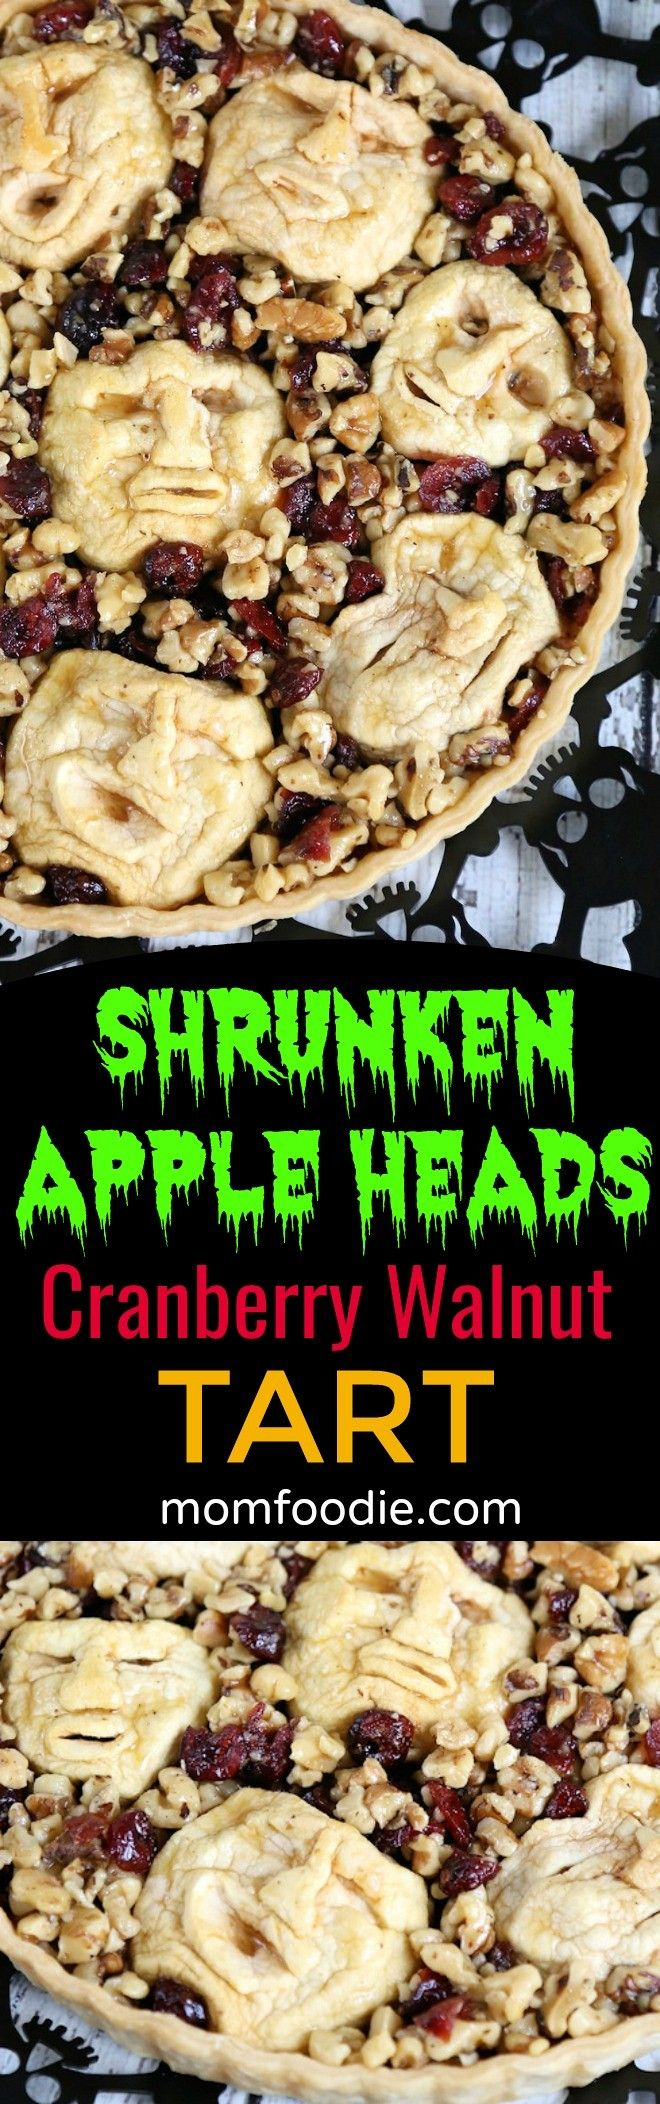 Shrunken Heads Halloween Apple Cranberry Walnut Tart Recipe -  Great creepy dessert for an adult Halloween party or dinner. #halloweenfood